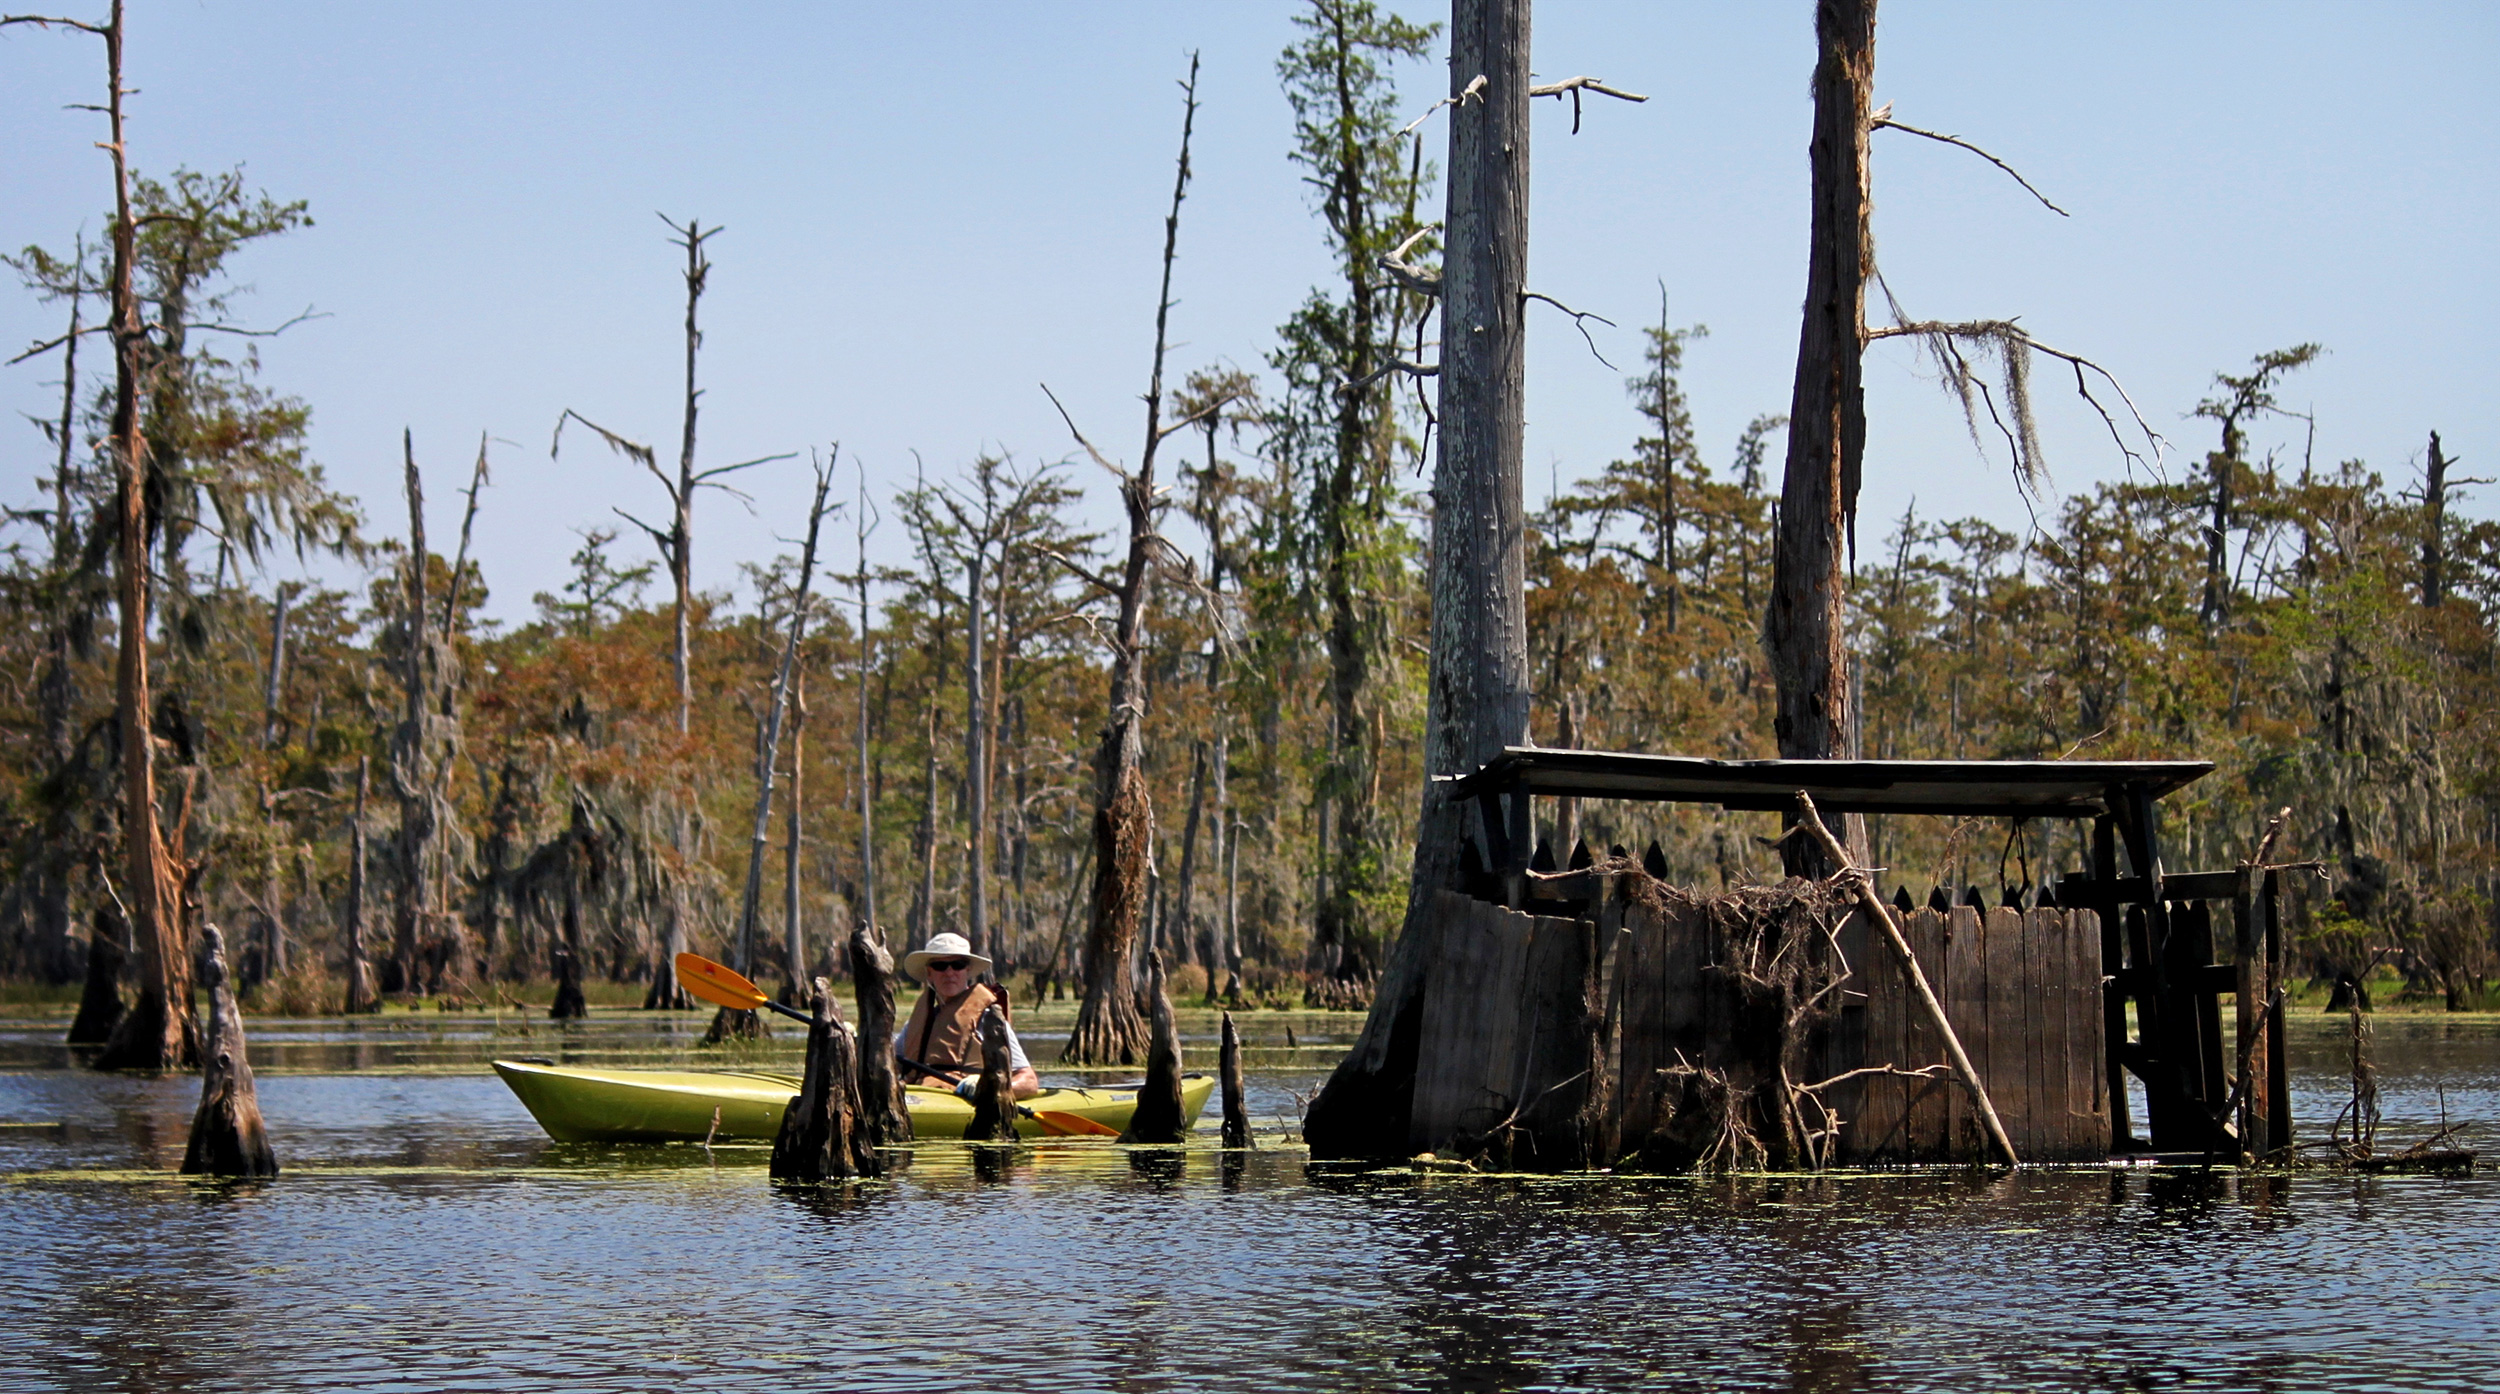 Some of the bayou's strangely deserted buildings, once used for duck  hunting, had been tossed about by storms and hurricanes. Photo by John  Hazlett